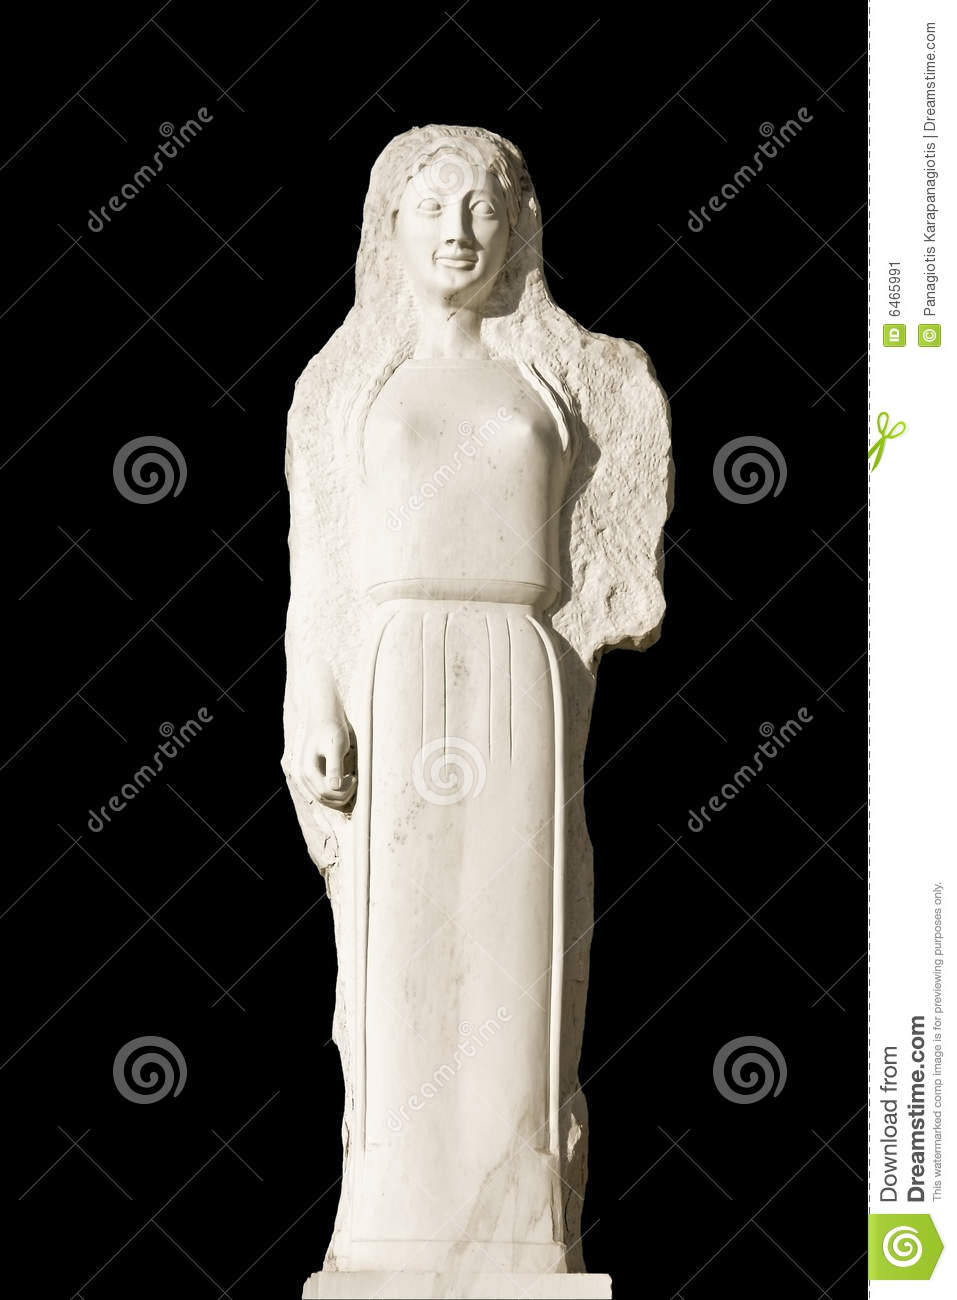 Replica of an ancient statue